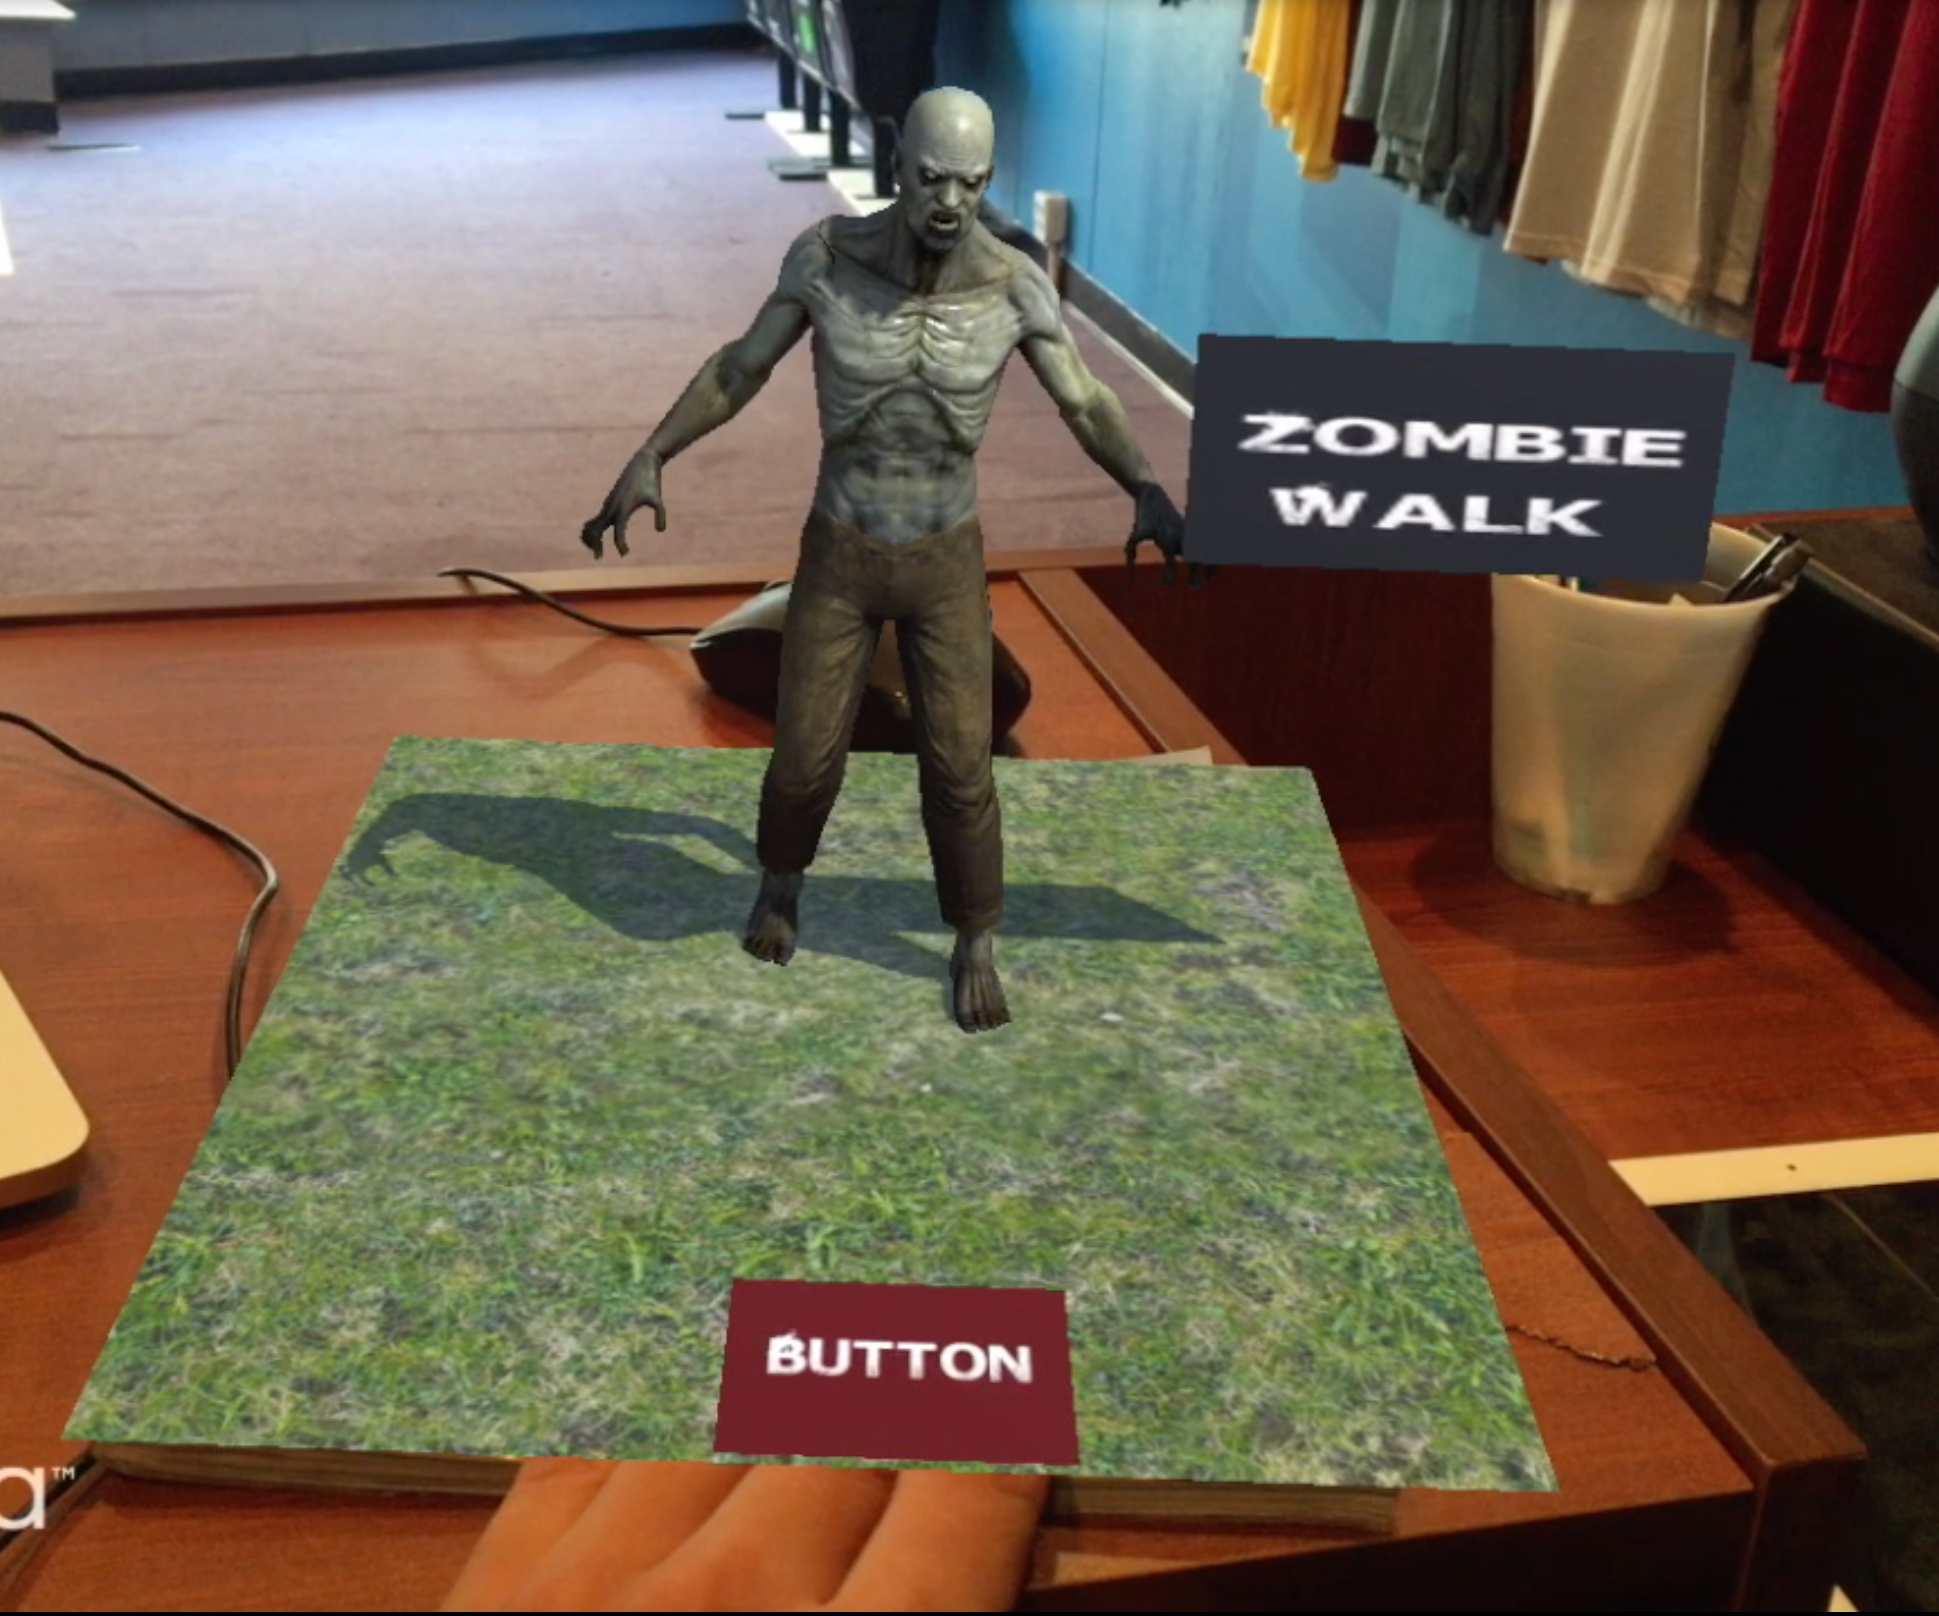 How to Augmented Reality Tutorial: Virtual Buttons